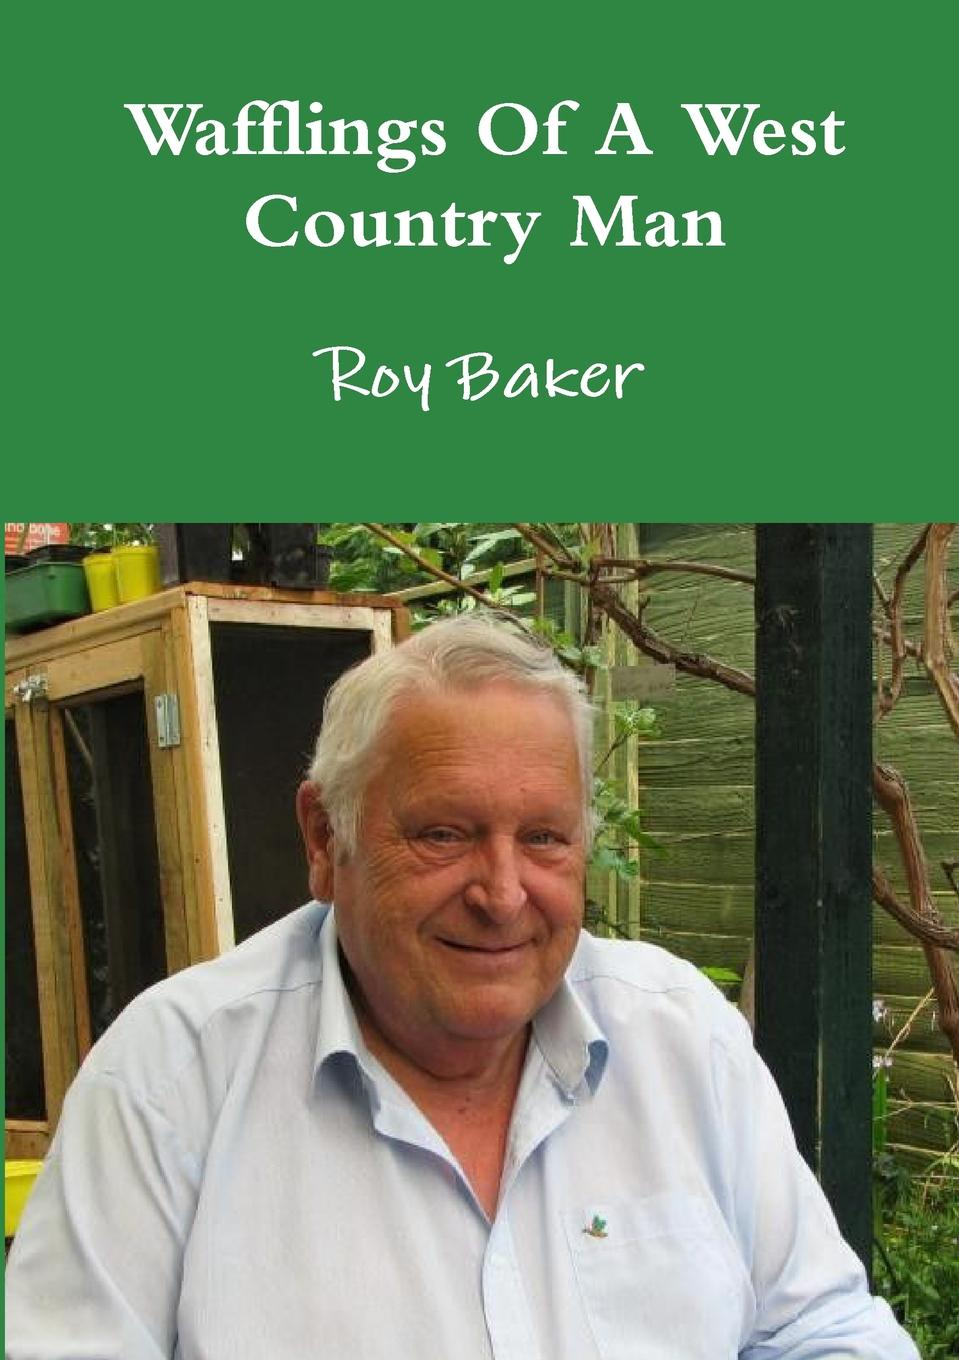 Roy Baker Wafflings Of A West Country Man